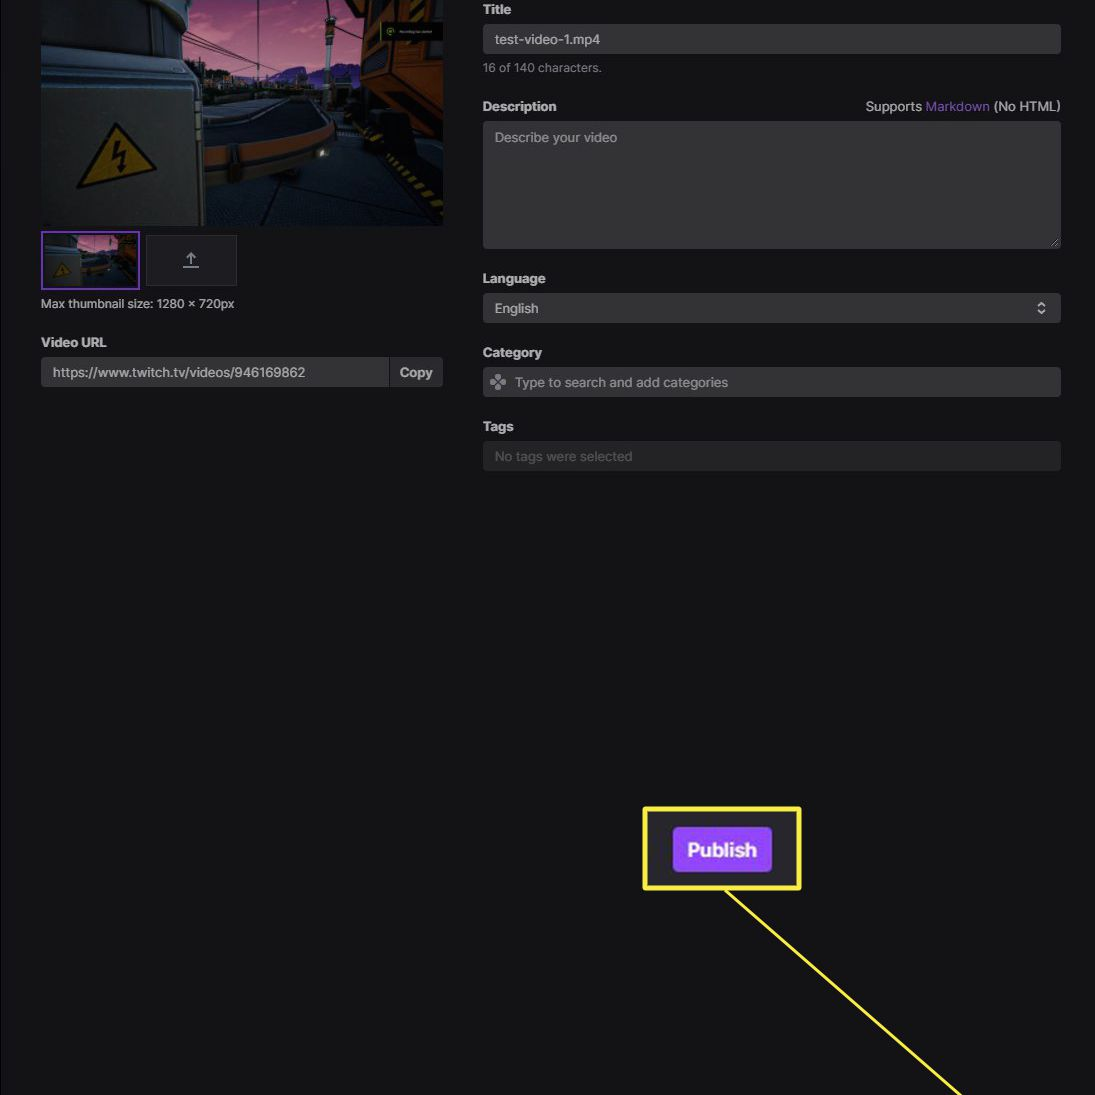 Twitch video upload screen with Publish highlighted